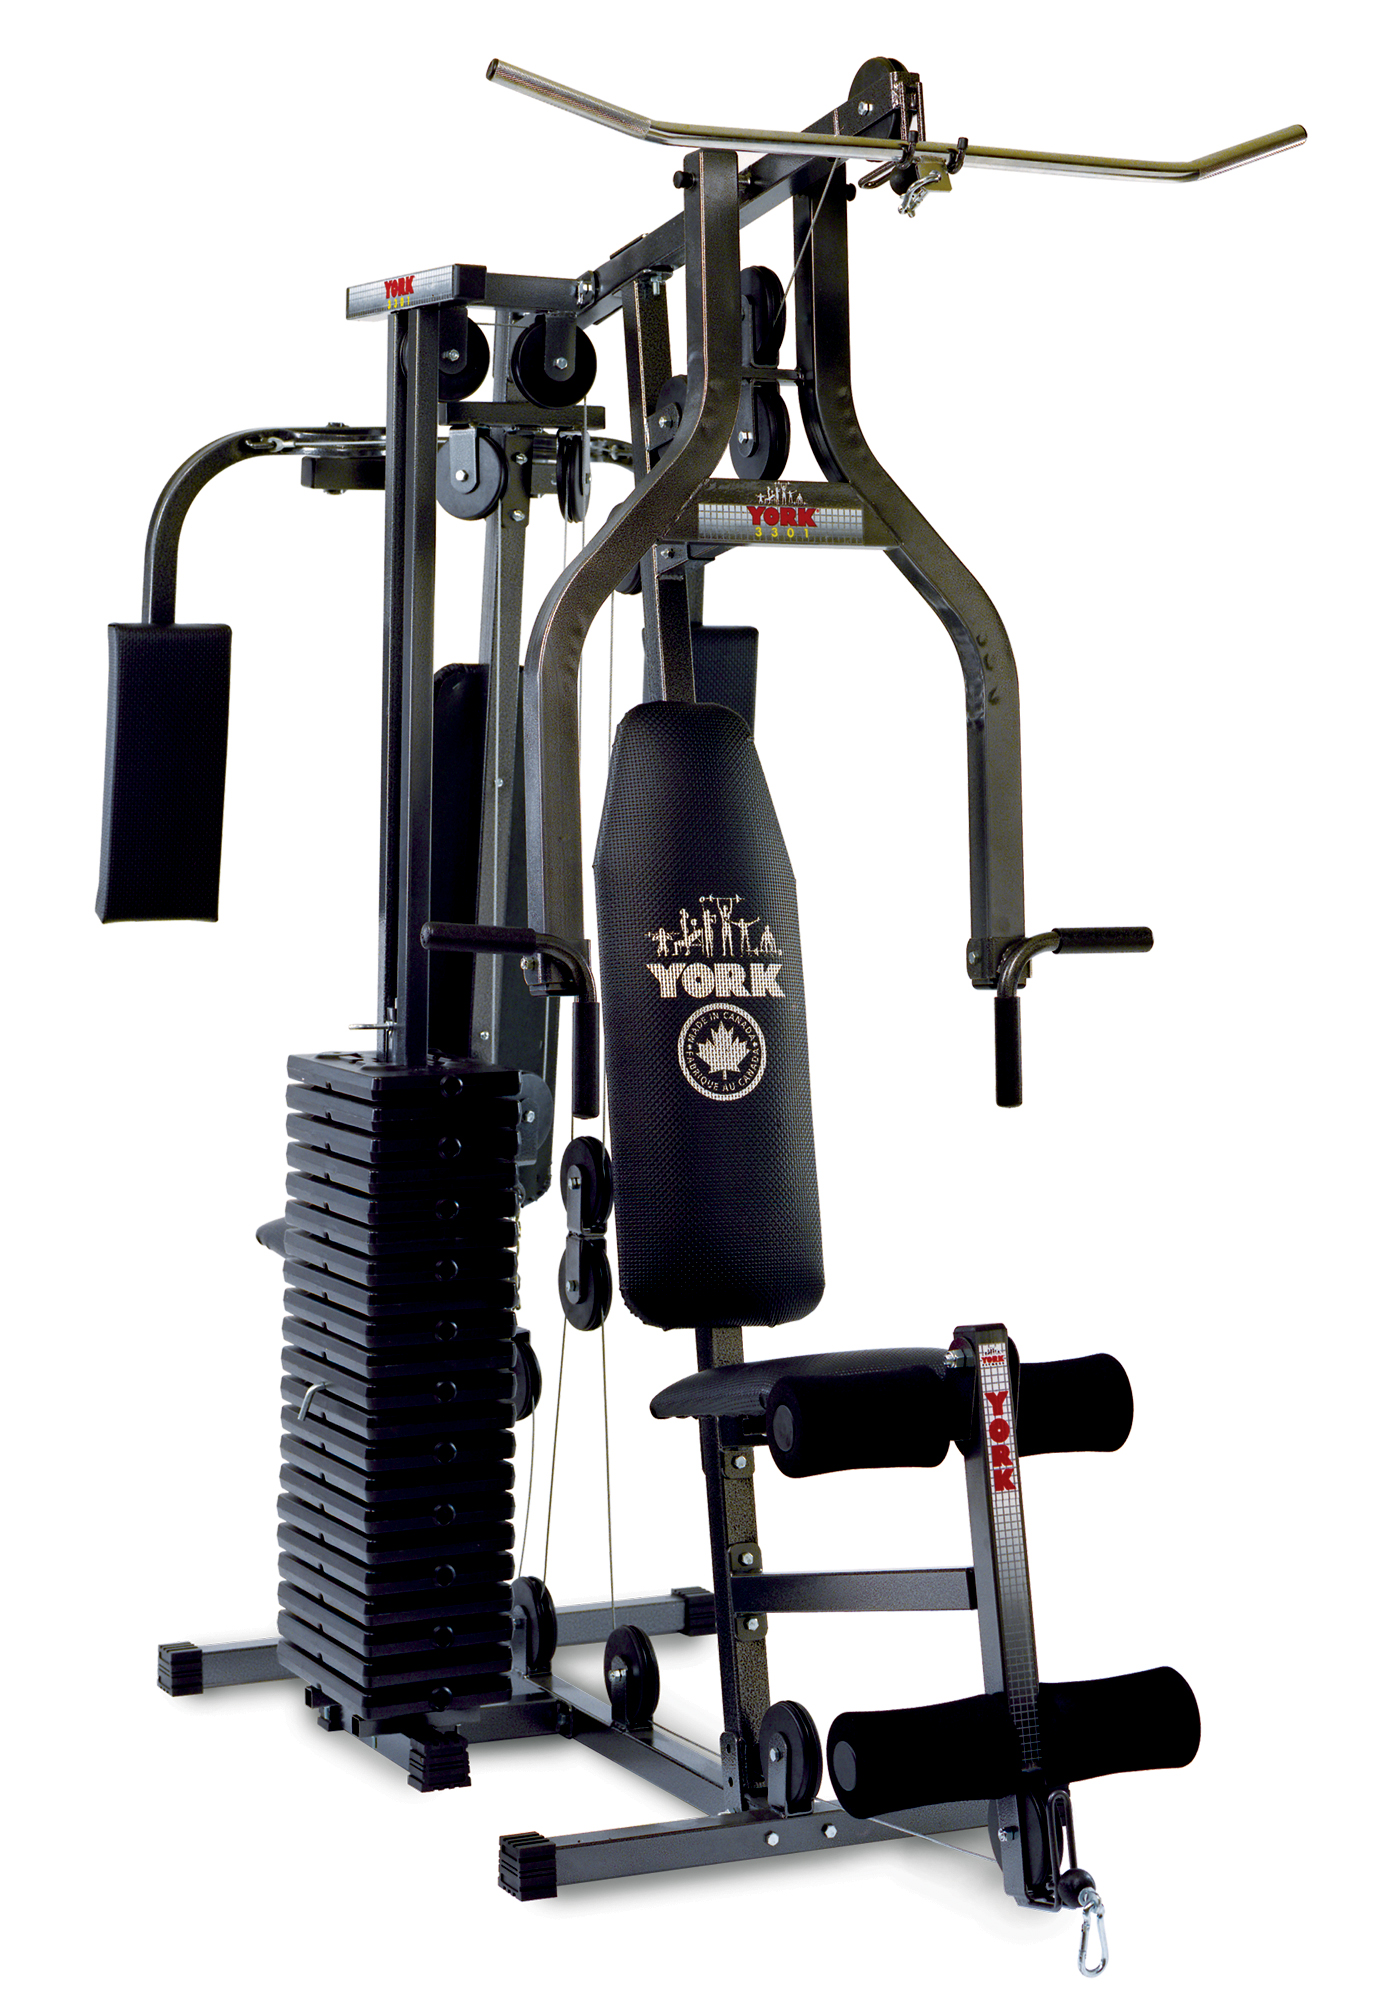 3301 Power Max Home Gym | Home Gym Equipment